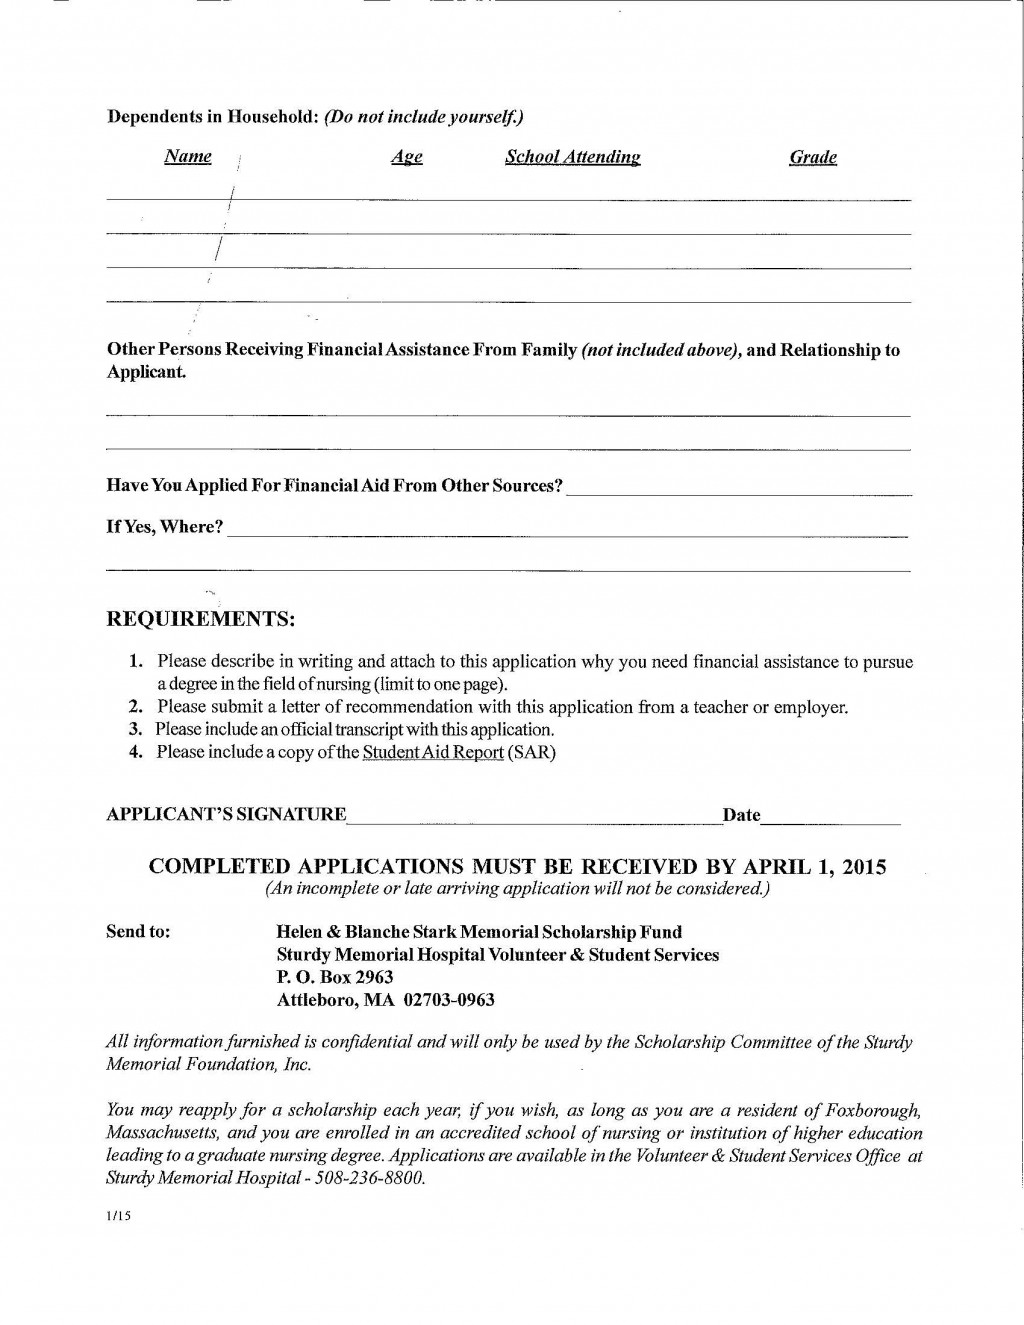 016 Essay Example Descriptive Thesis Helen Blanche Stark Memorial Scholarship Fund Application Page 2 Rare Statement Generator Pdf Large